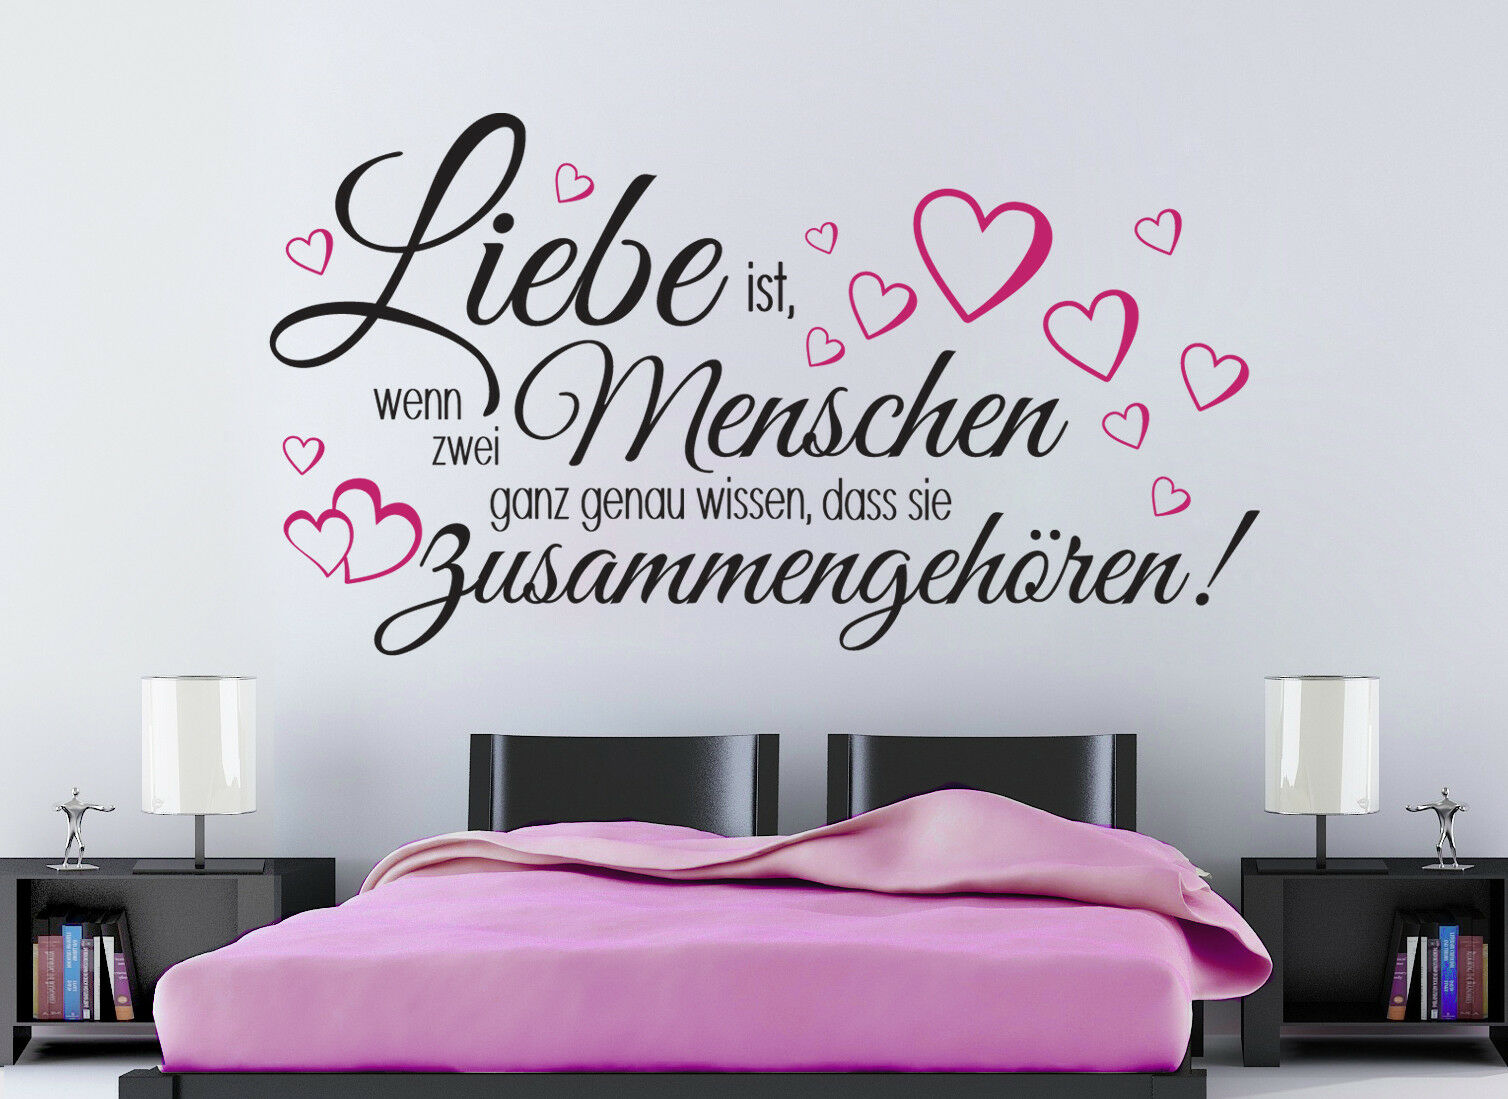 liebe ist hochzeit schlafzimmer spr che herz wandaufkleber wandspruch wandtattoo eur 15 95. Black Bedroom Furniture Sets. Home Design Ideas